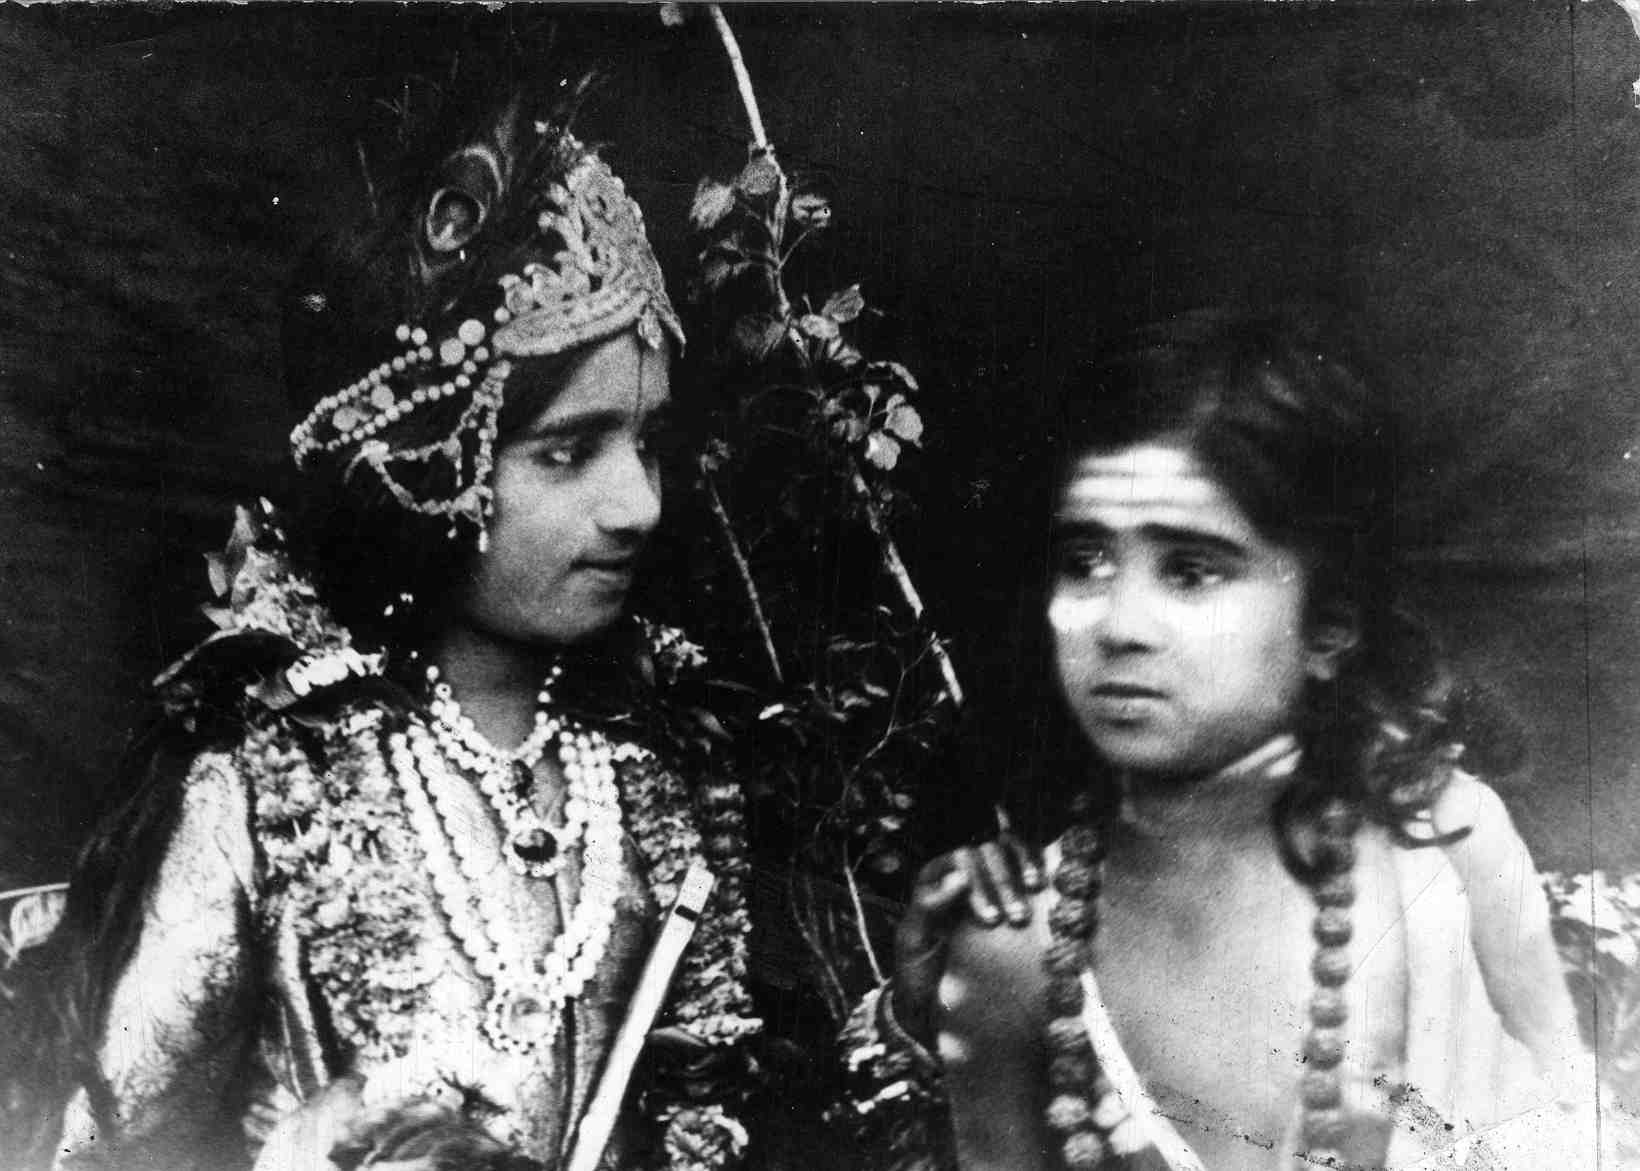 Suno Chhotisi Gudiya Ki Lambi Kahani-7-Lata and Meena in the stage play Gurukul